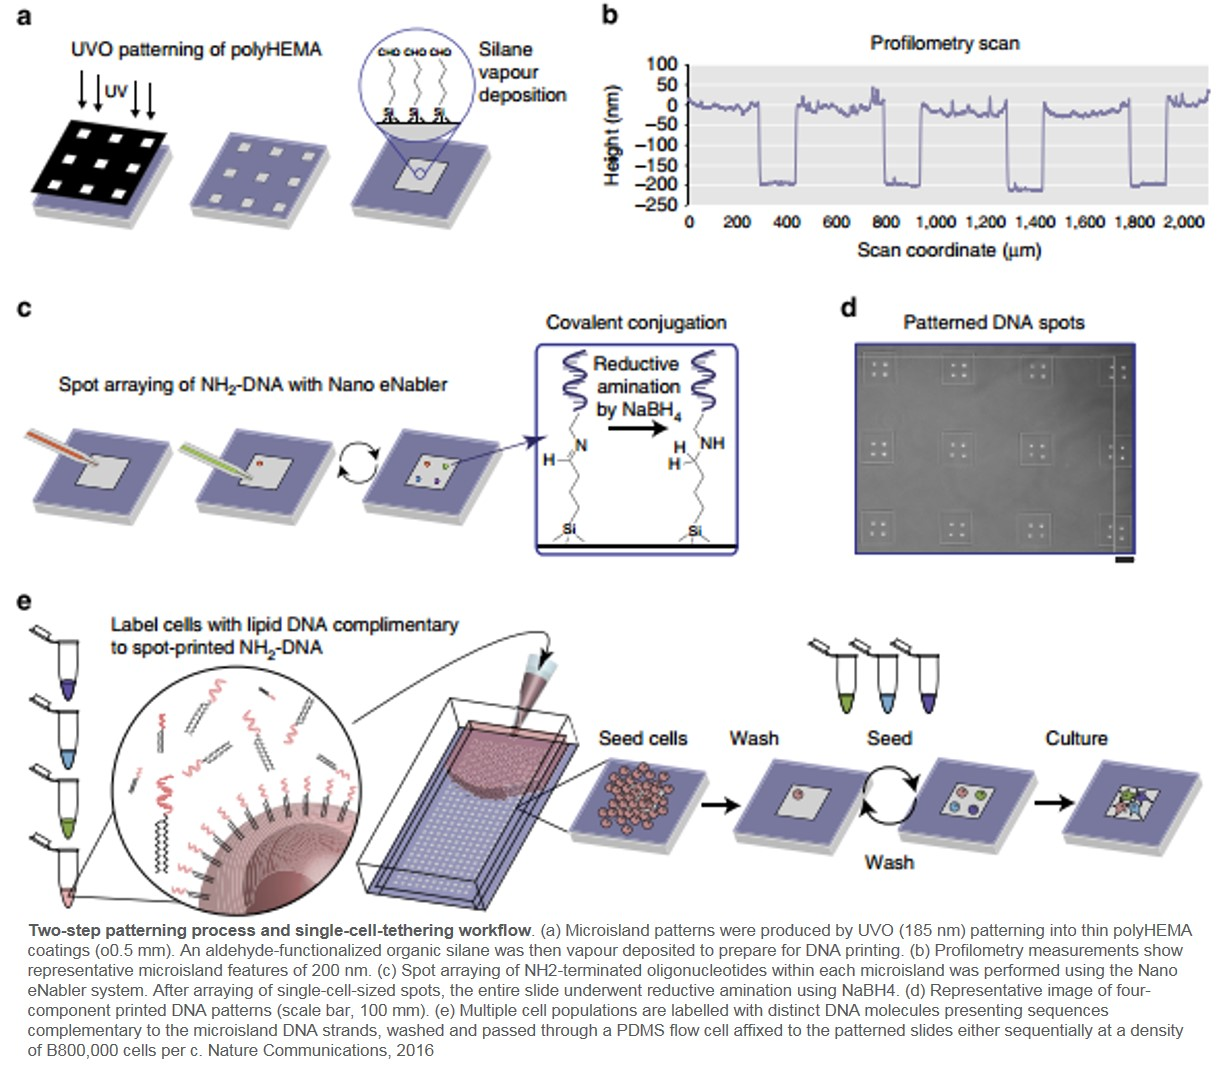 A high-throughput, multiplexed cellular platform to study cell-cell signalling networks